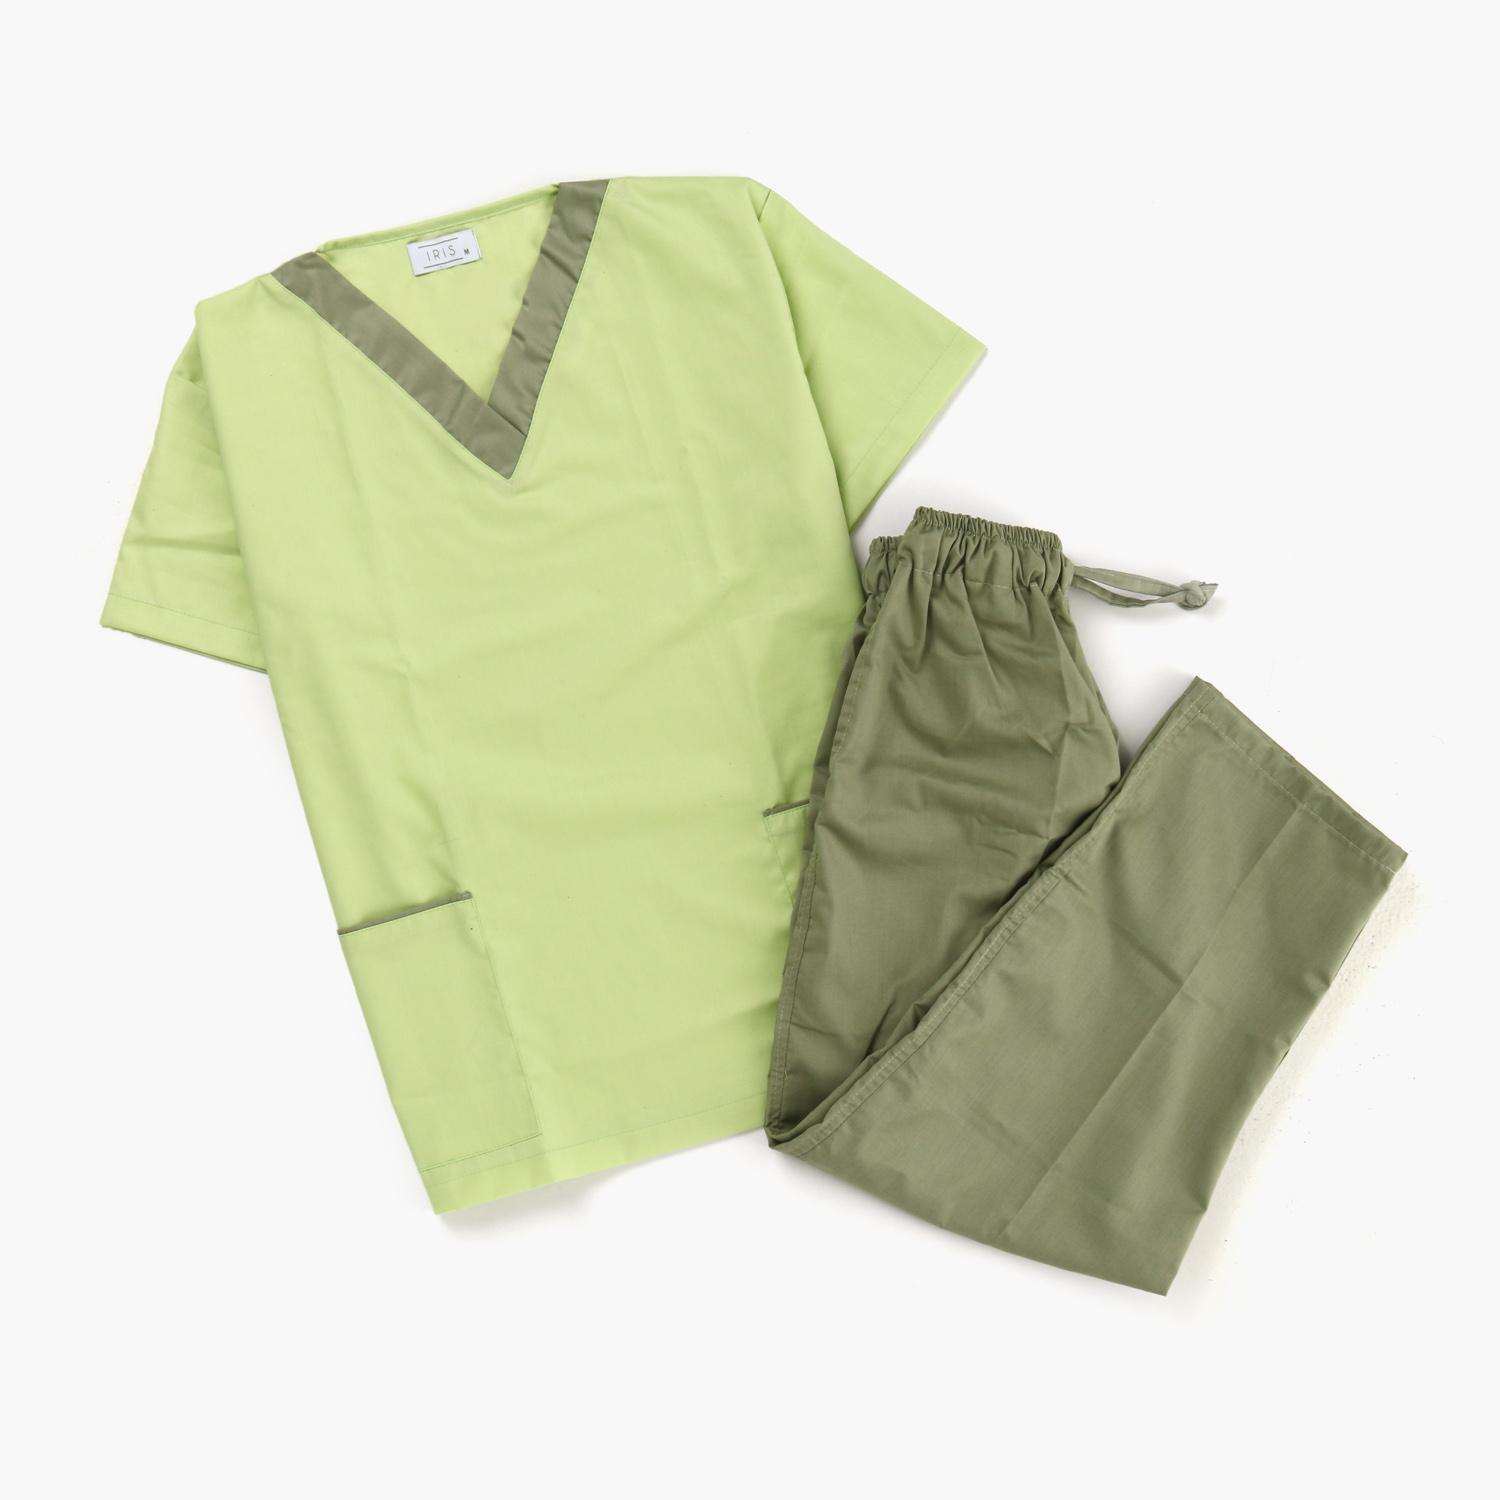 07364965fc2 Iris Medium Scrub Suit in Green: Buy sell online Work Coveralls ...